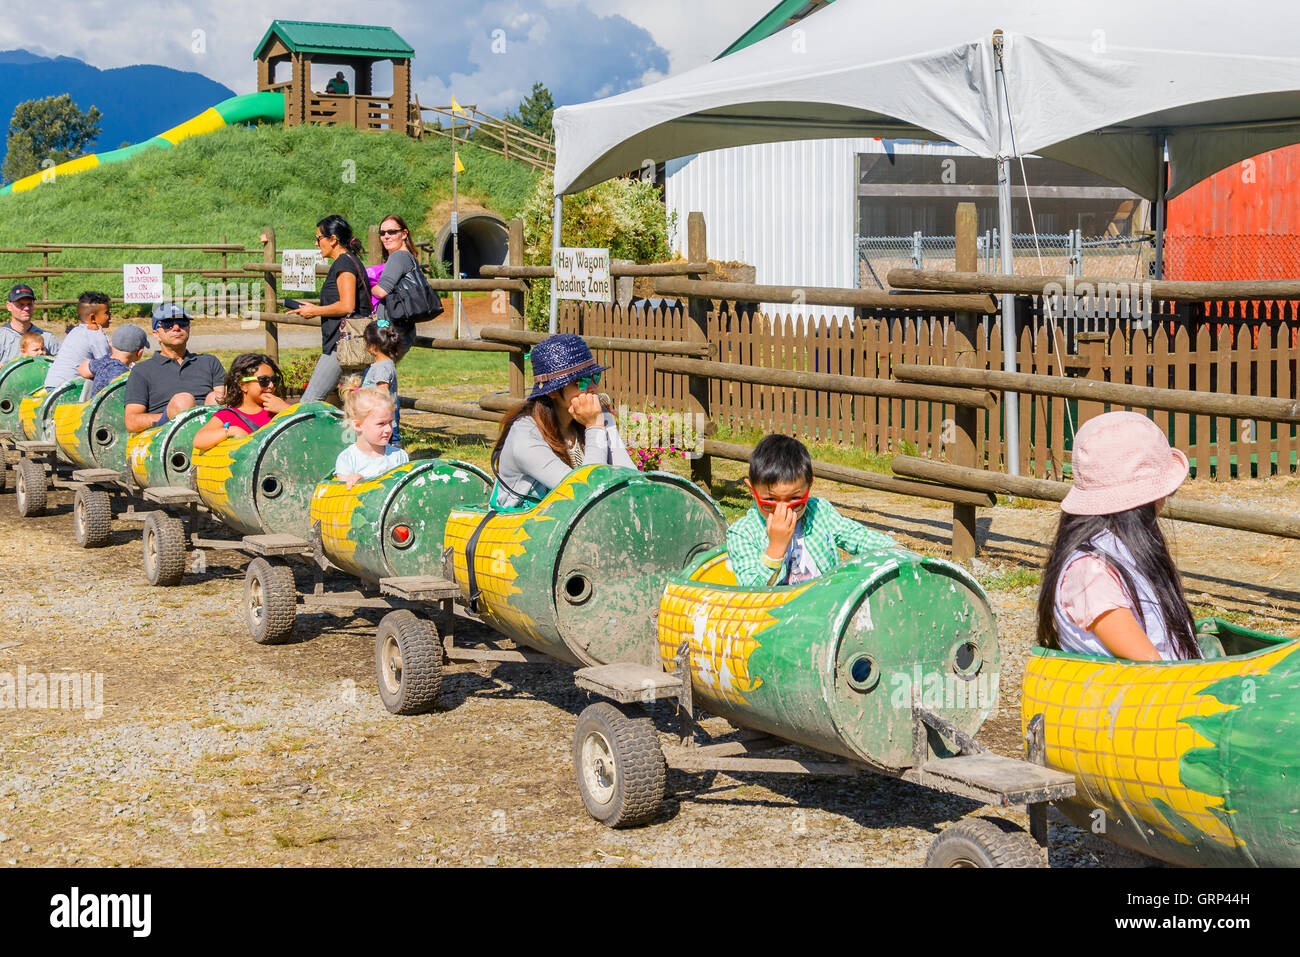 Hopcott's Meadows Corn Maze train, Pitt Meadows, British Columbia, Canada - Stock Image